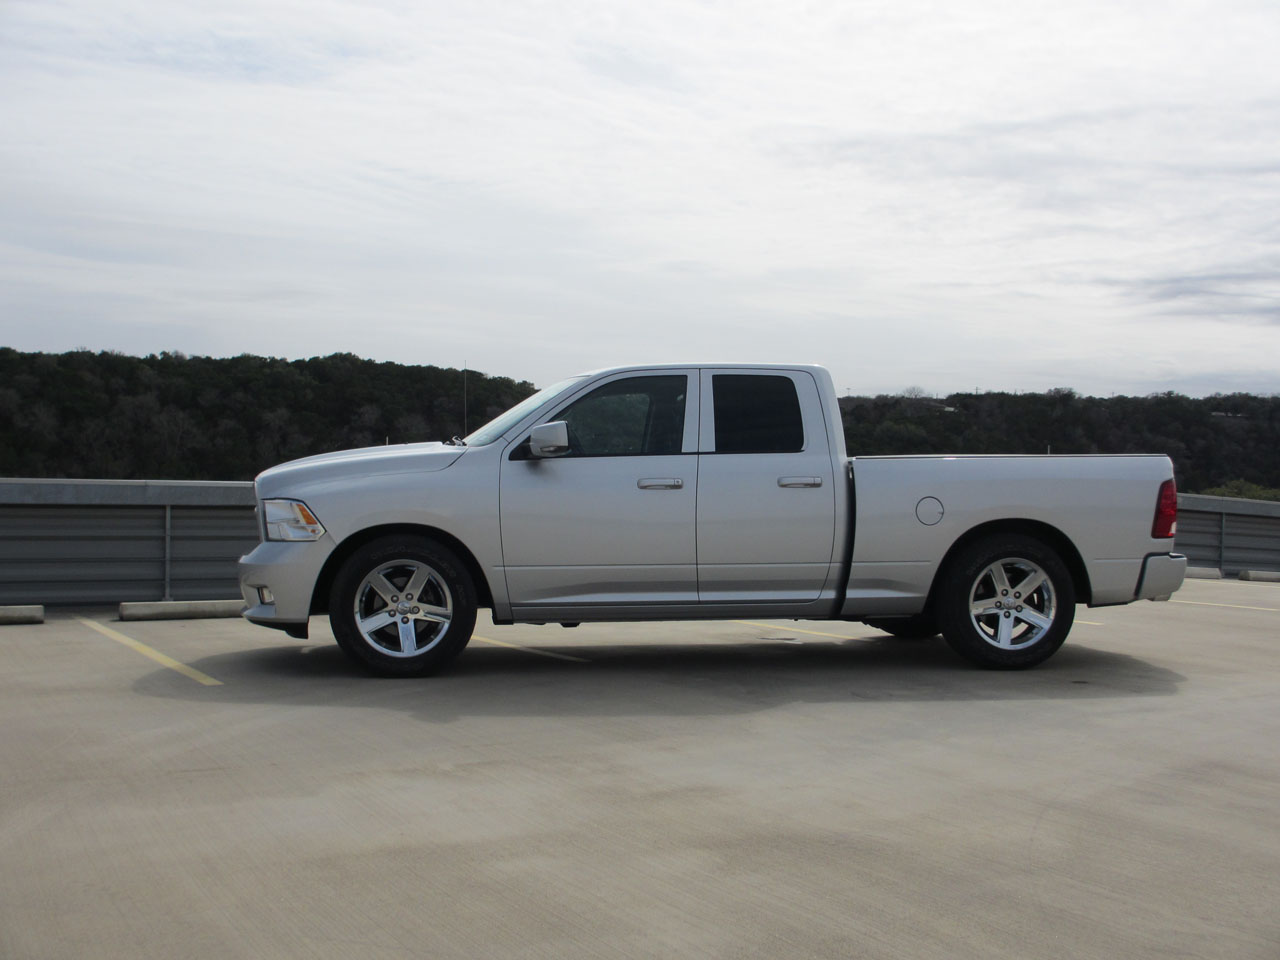 2010 Silver Dodge Ram 1500 QuadCab Sport picture, mods, upgrades